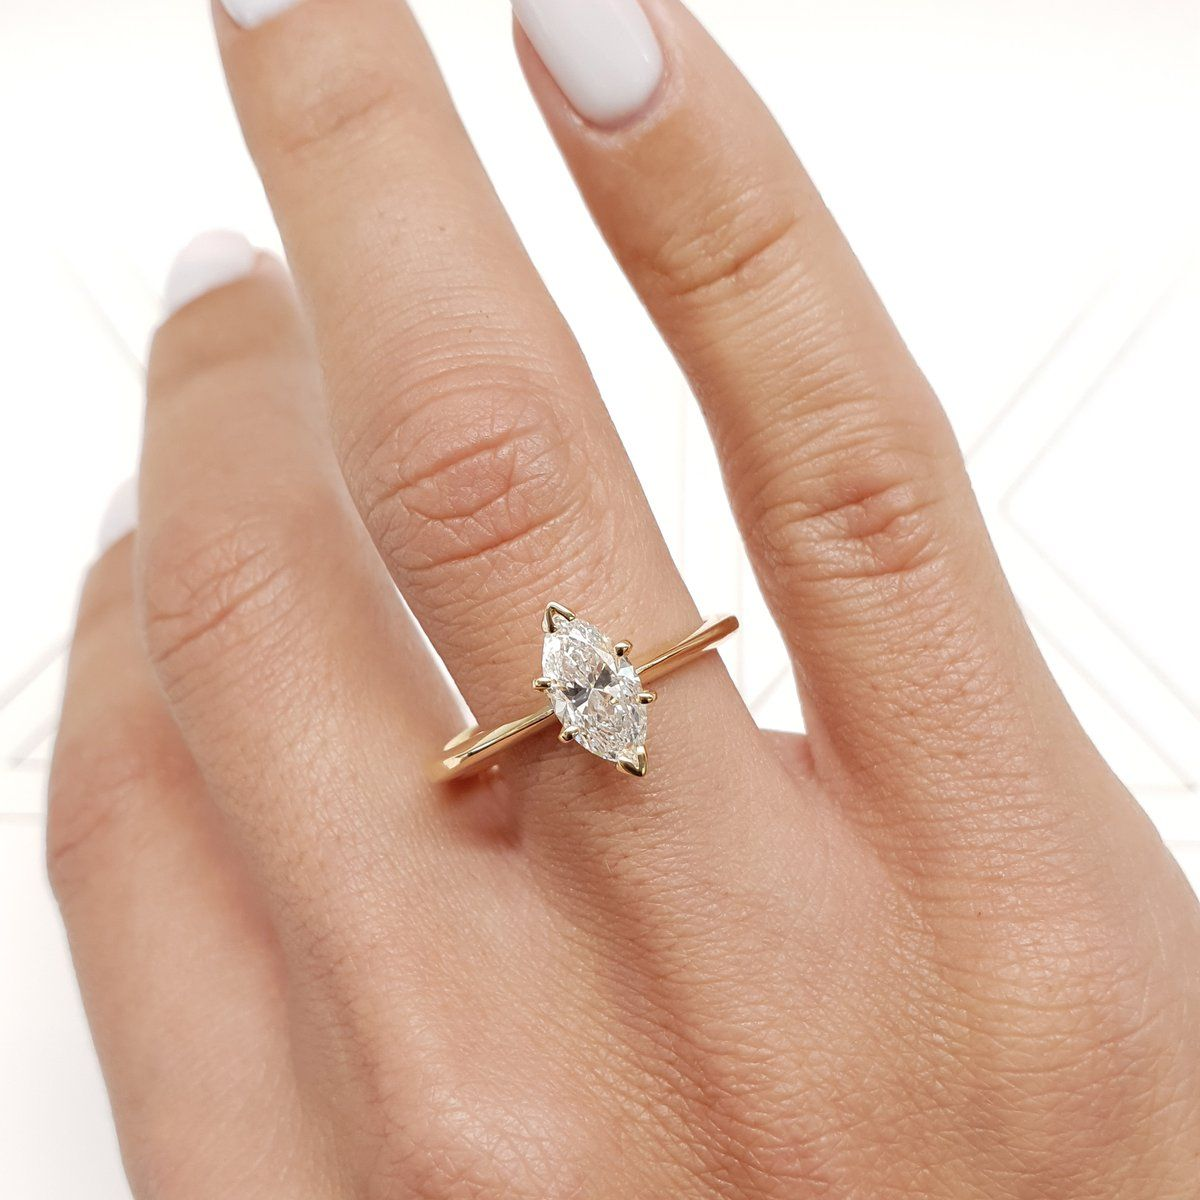 Rose Gold Engagement Ring Rose Gold Wedding Band Rose Gold Ring 1 ct Marquise Cut Solitaire Engagement Wedding Ring Solid 14k Rose Gold